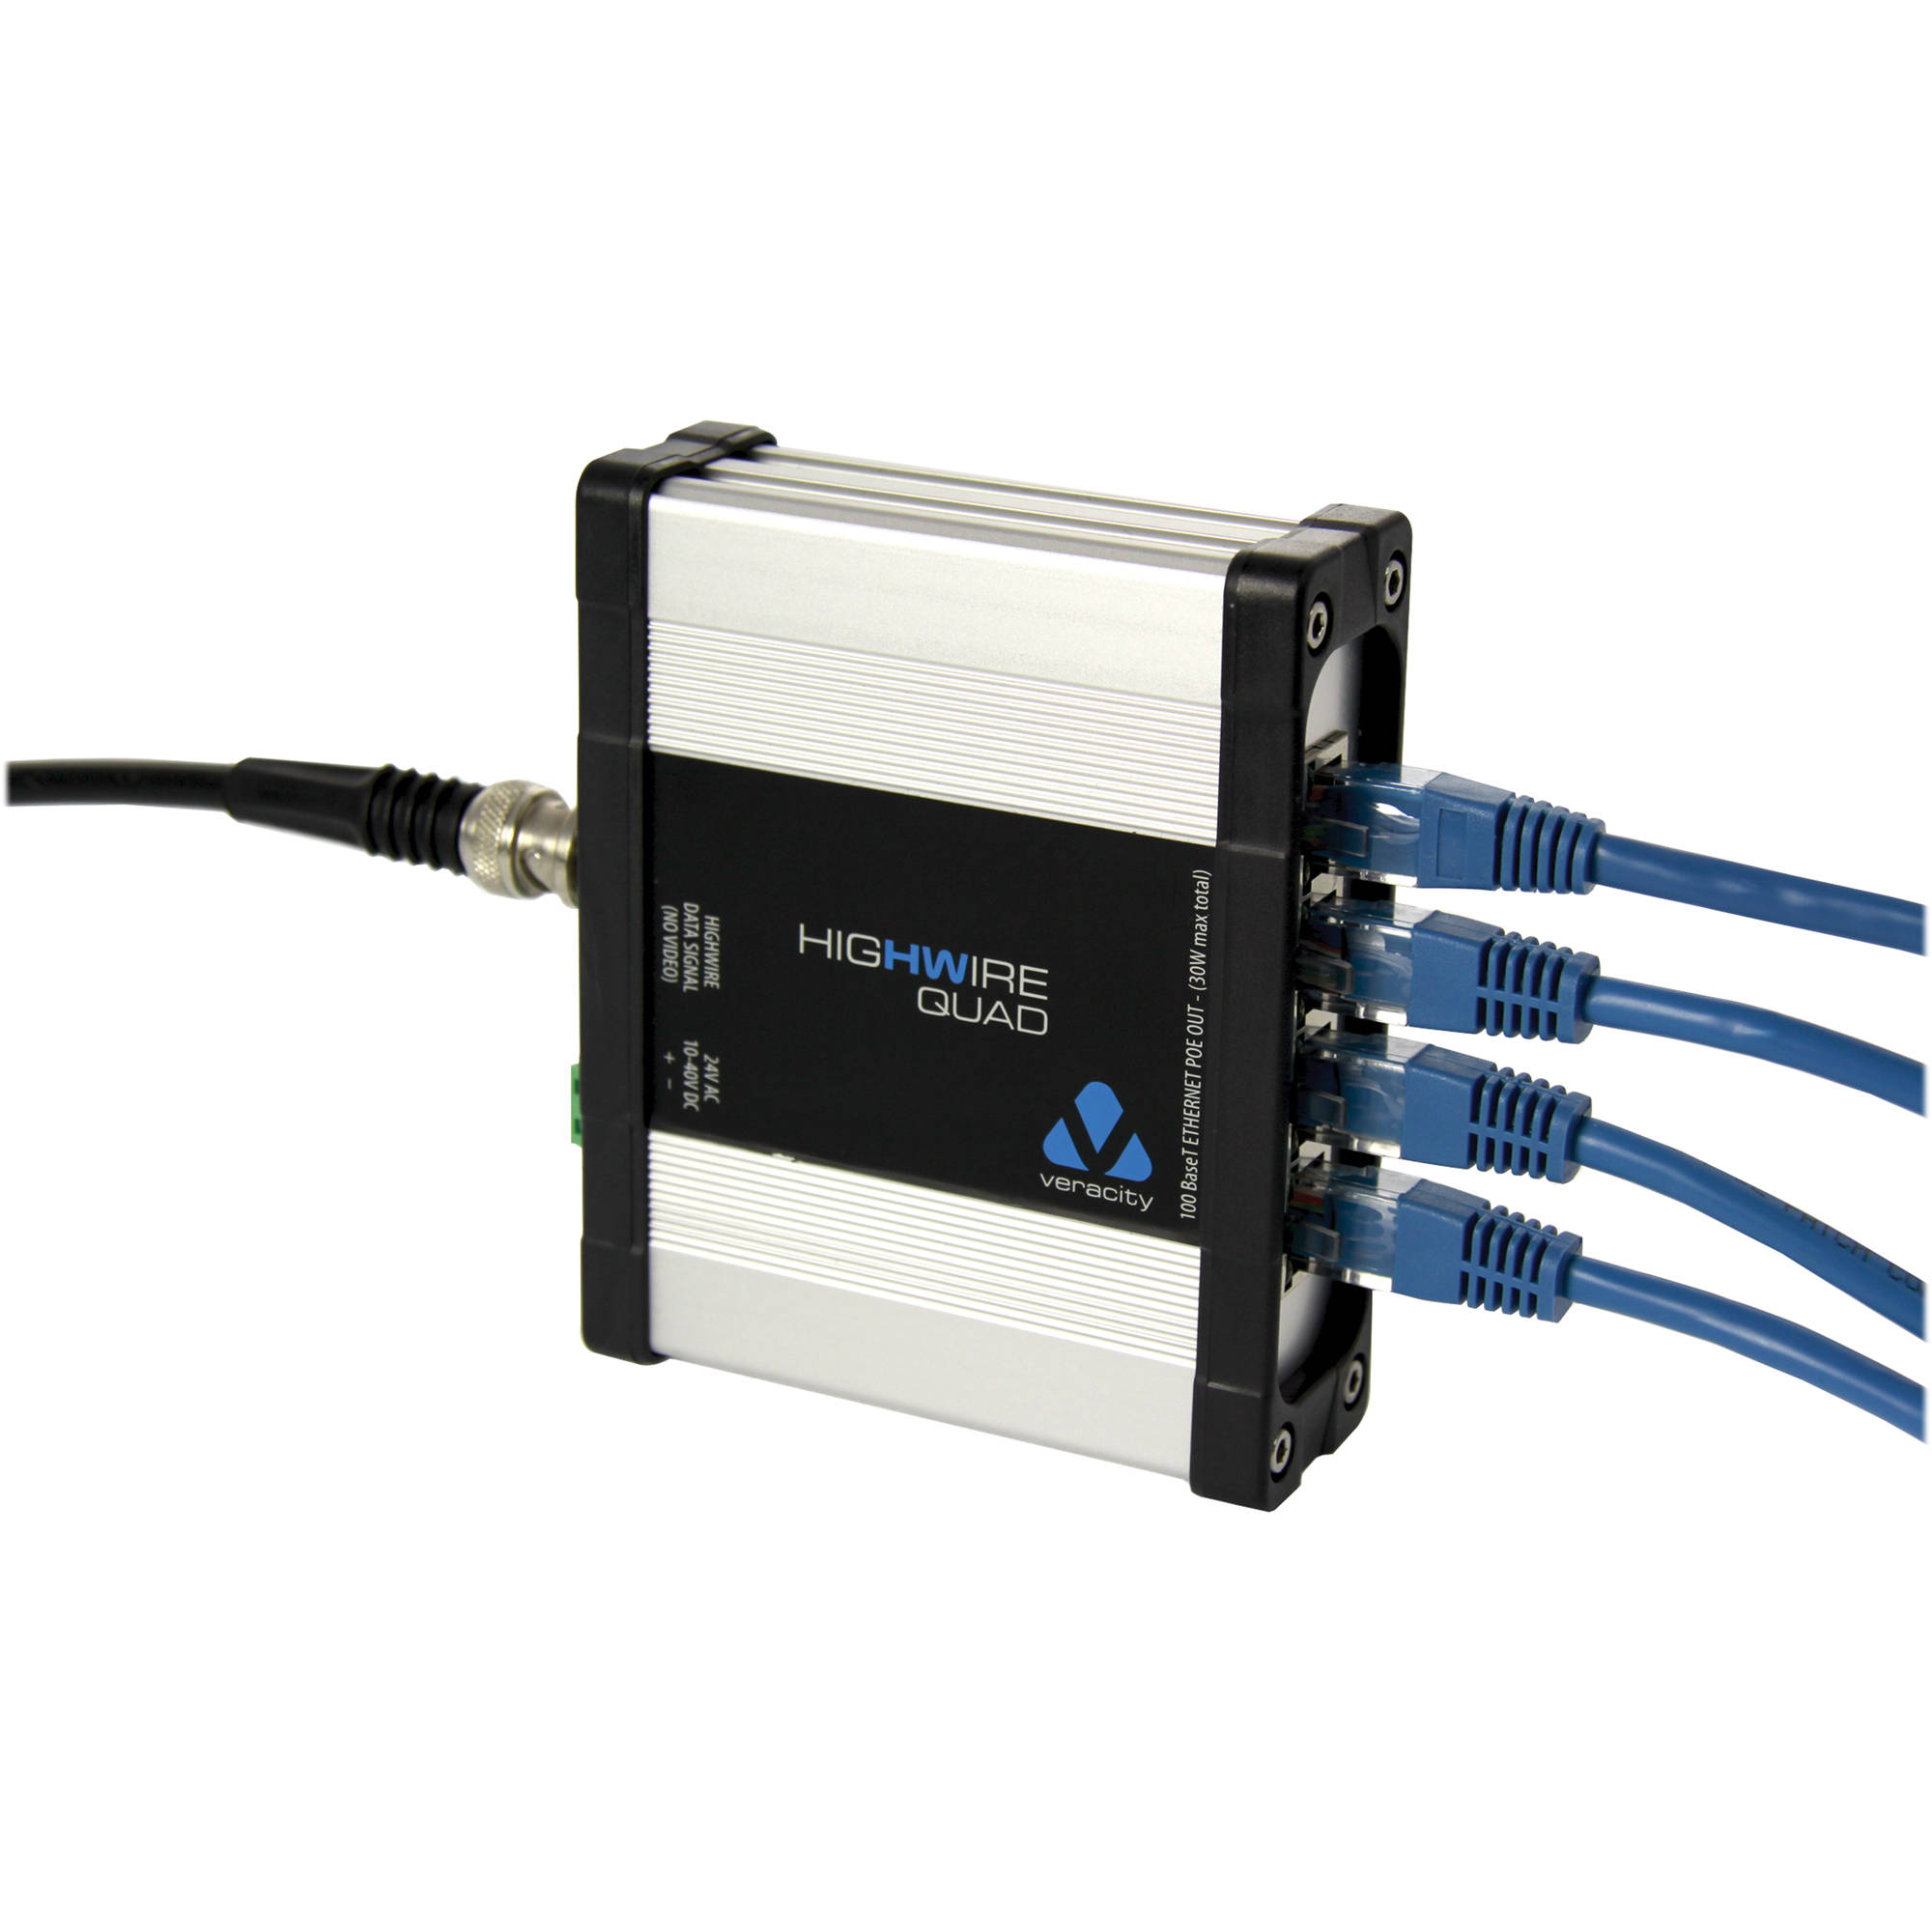 Coaxial Cable To Ethernet Adapter : Veracity highwire quad ethernet over coax converter vhw